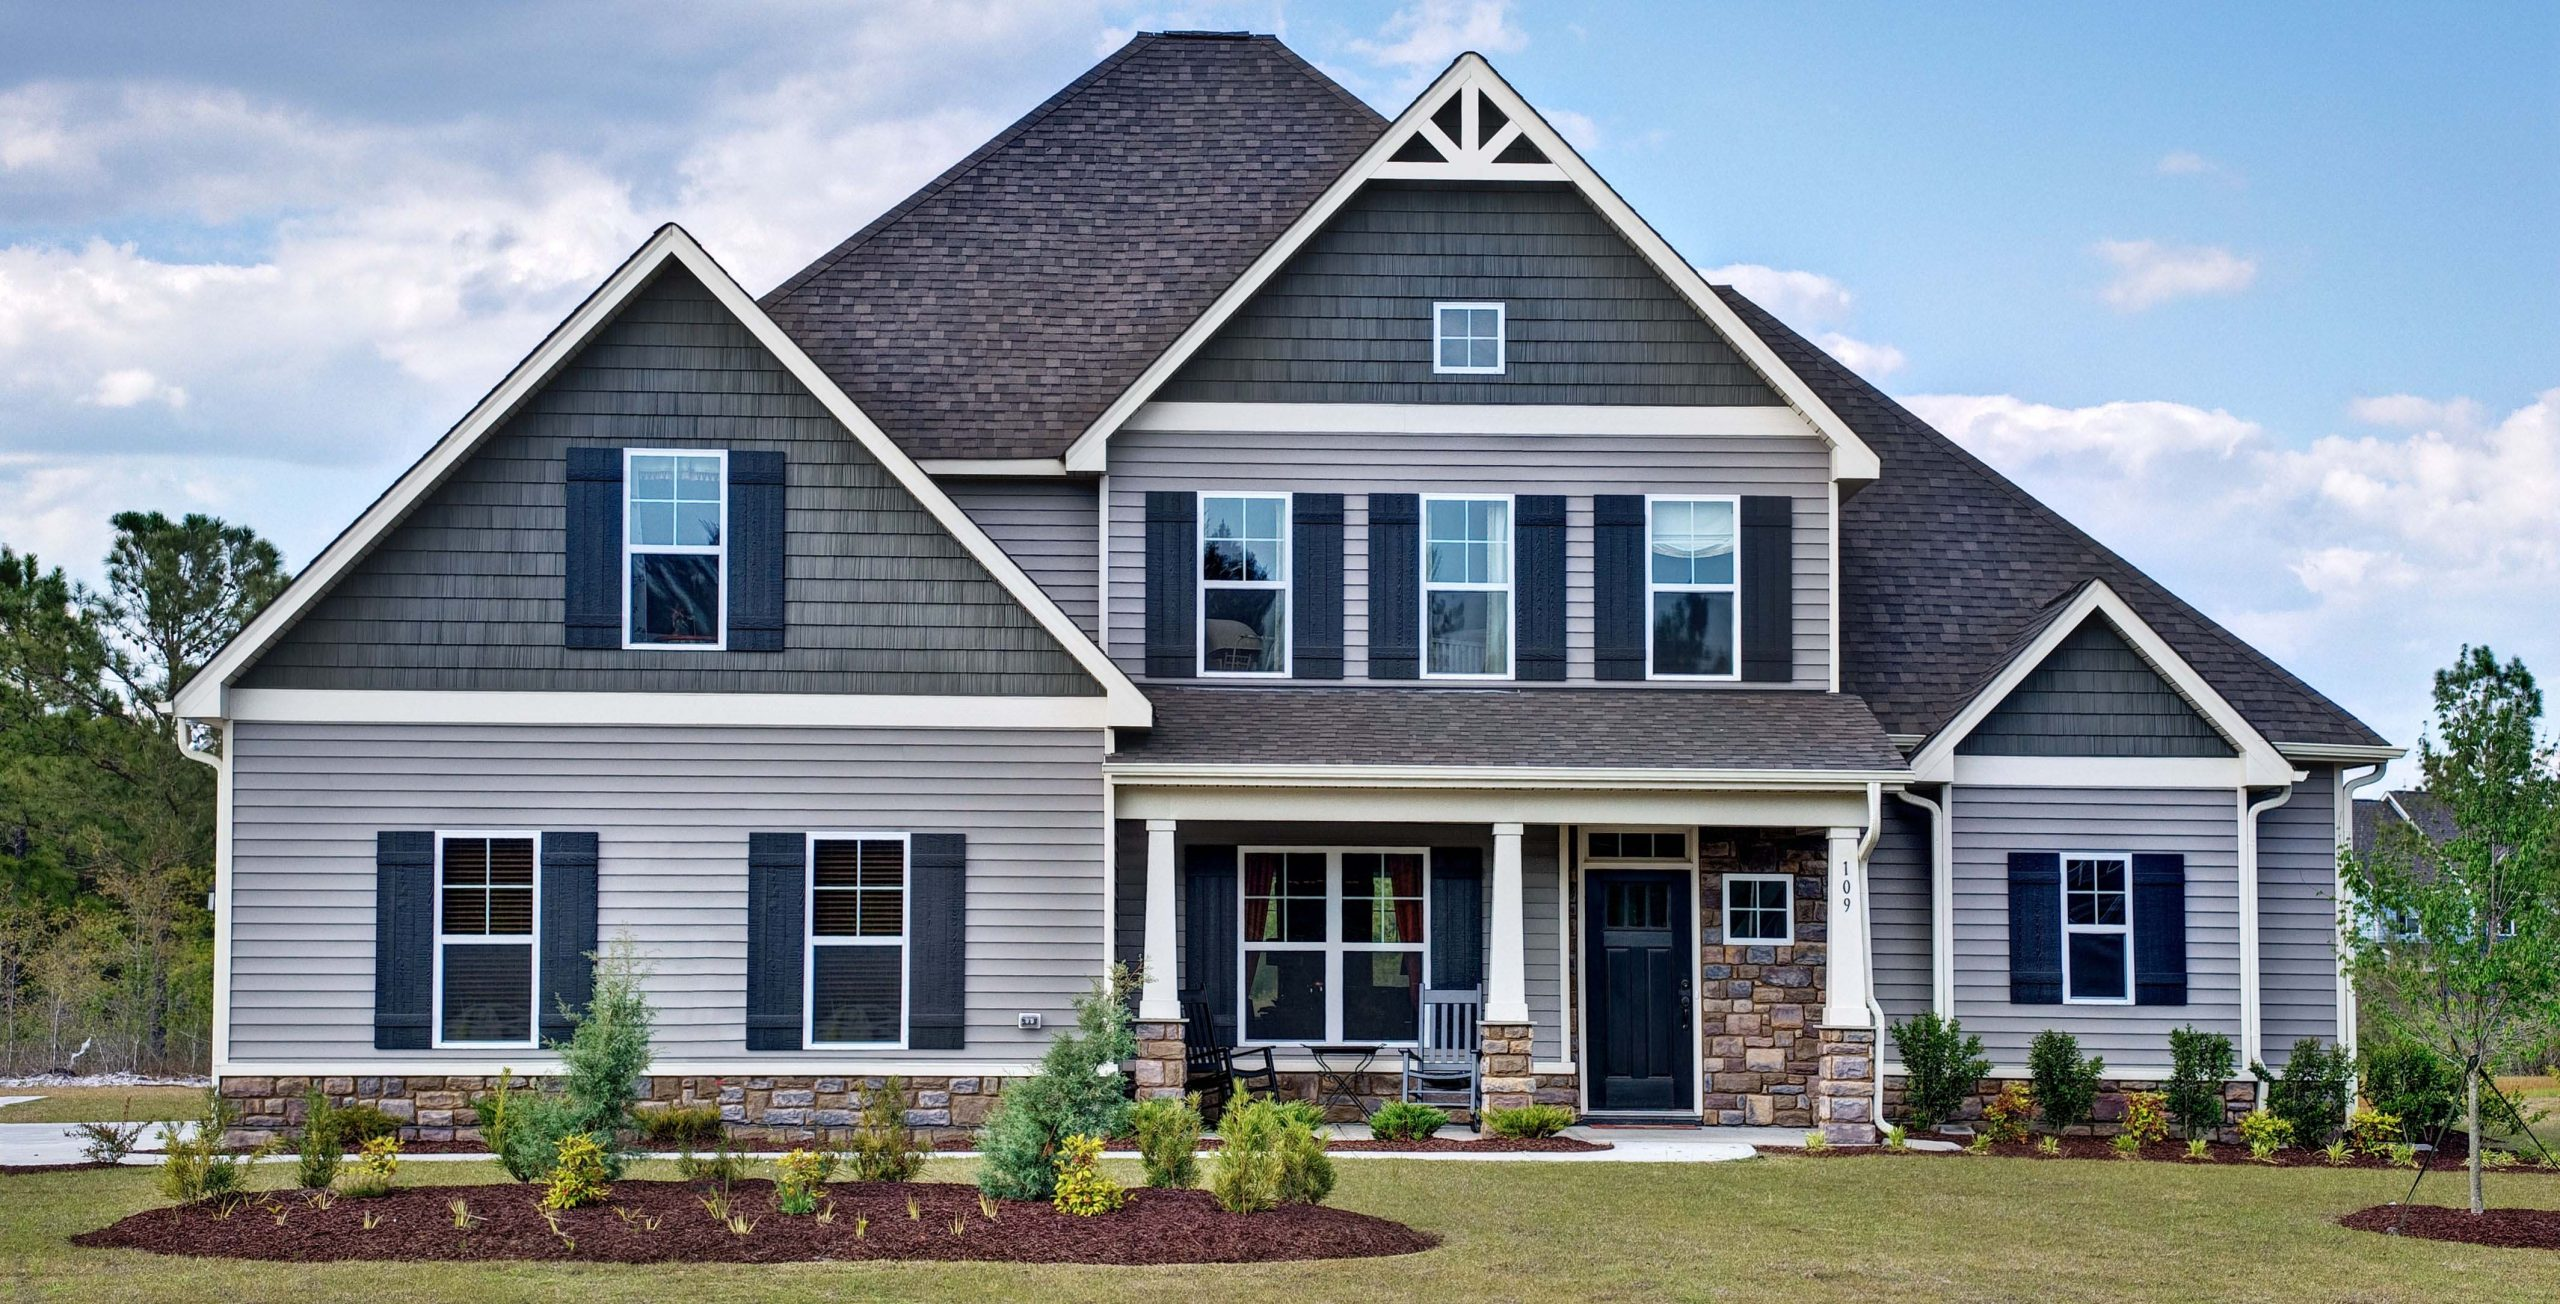 Two toned blue and gray siding colors with black front door. White trim with blue shutters. Brown stone veneer.